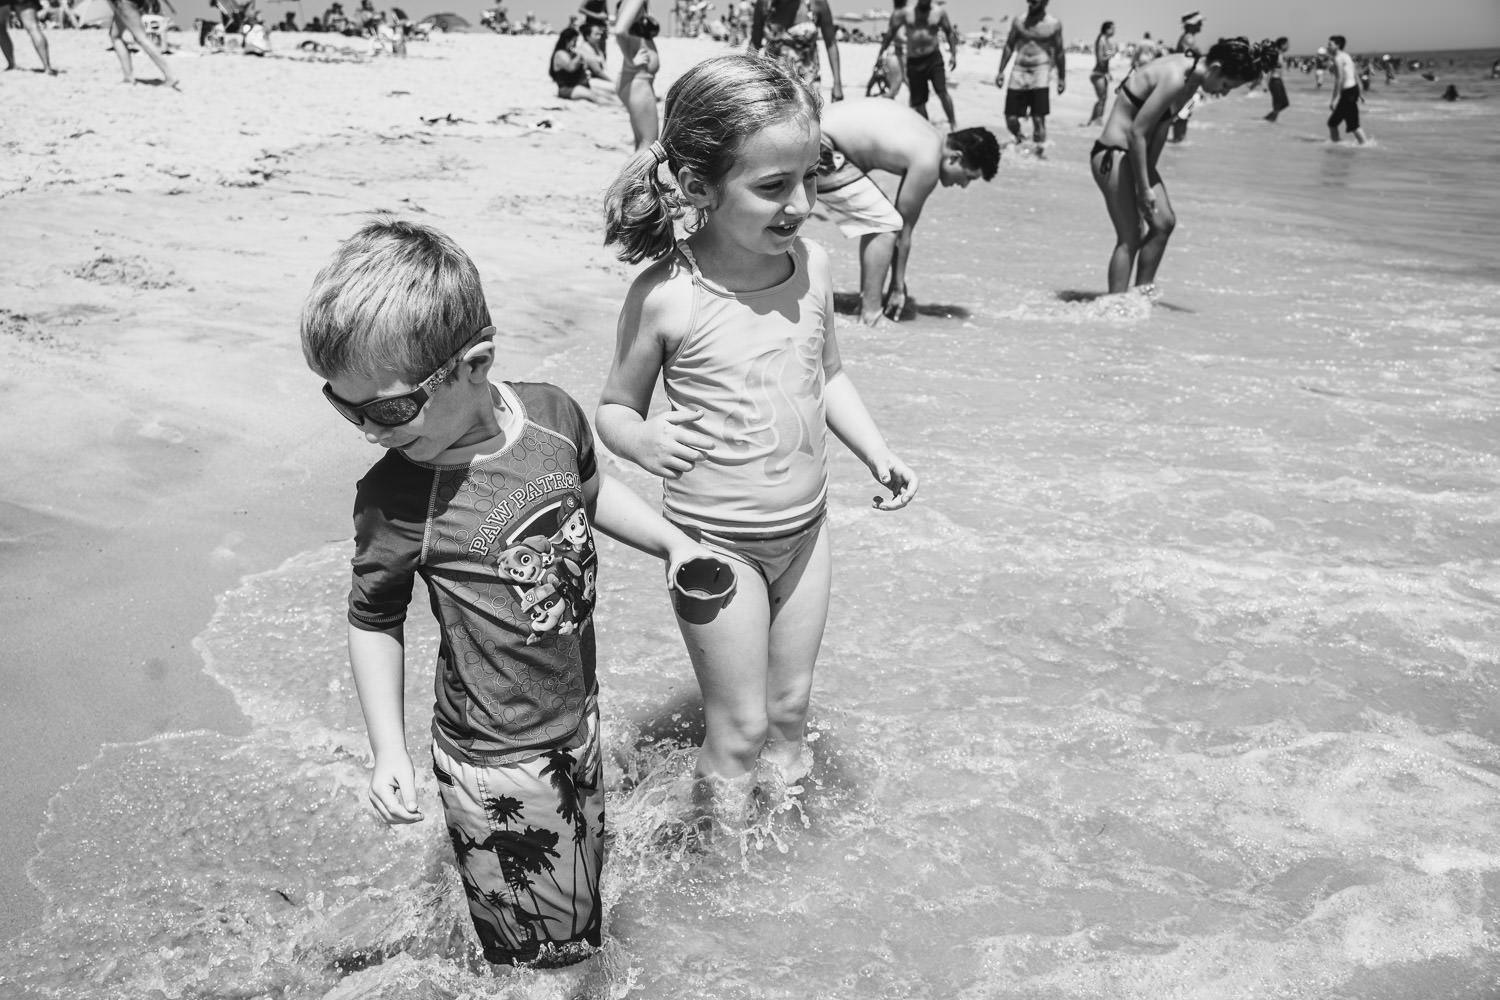 Two children wade through the water at the beach.